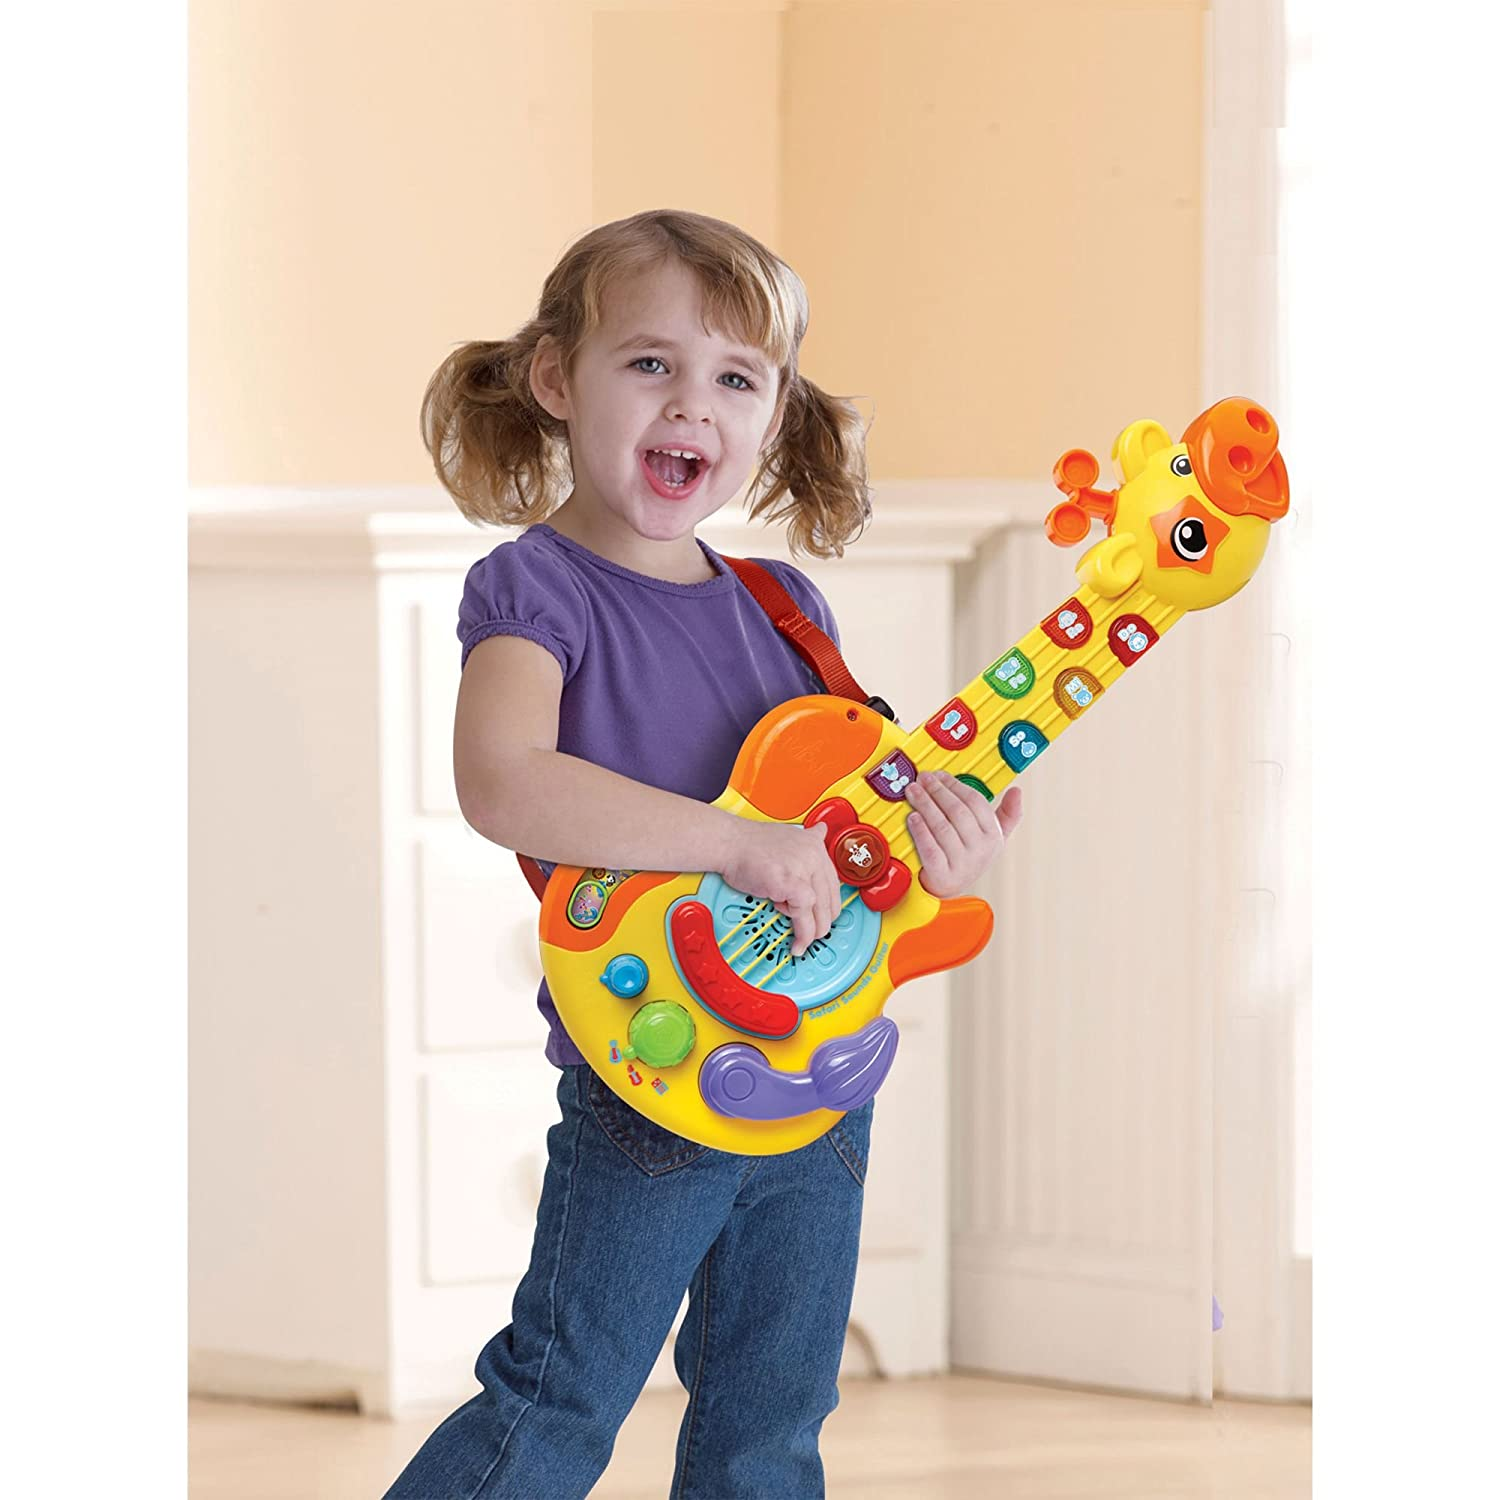 Vtech Guitar FFP Activity Toy Amazon Toys & Games